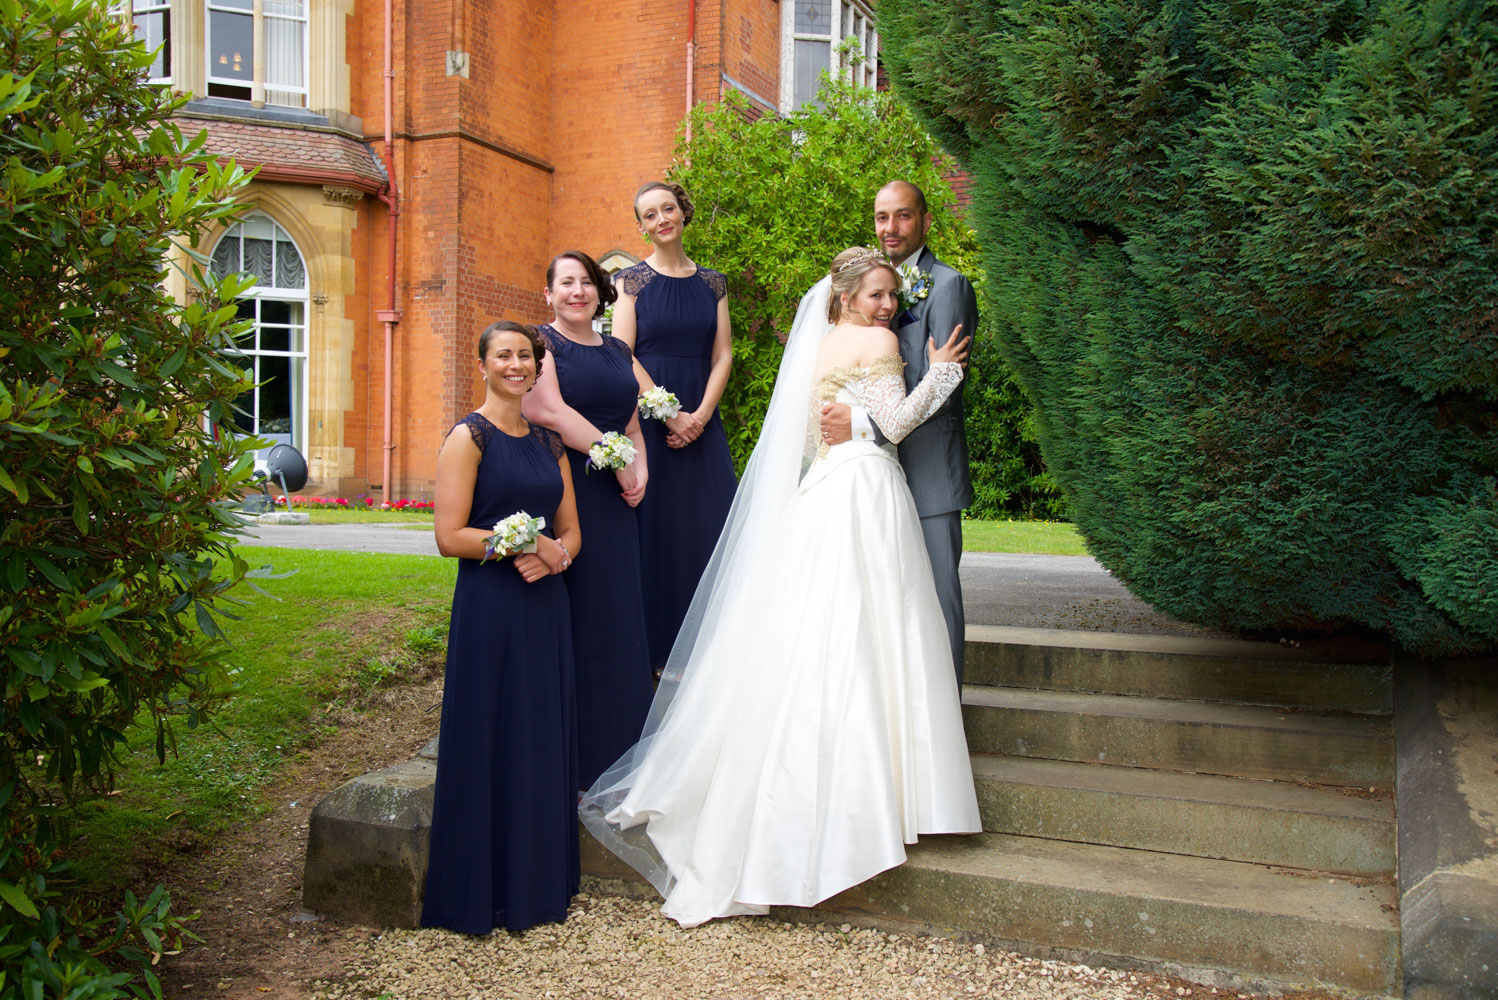 highburyhallweddingphotography